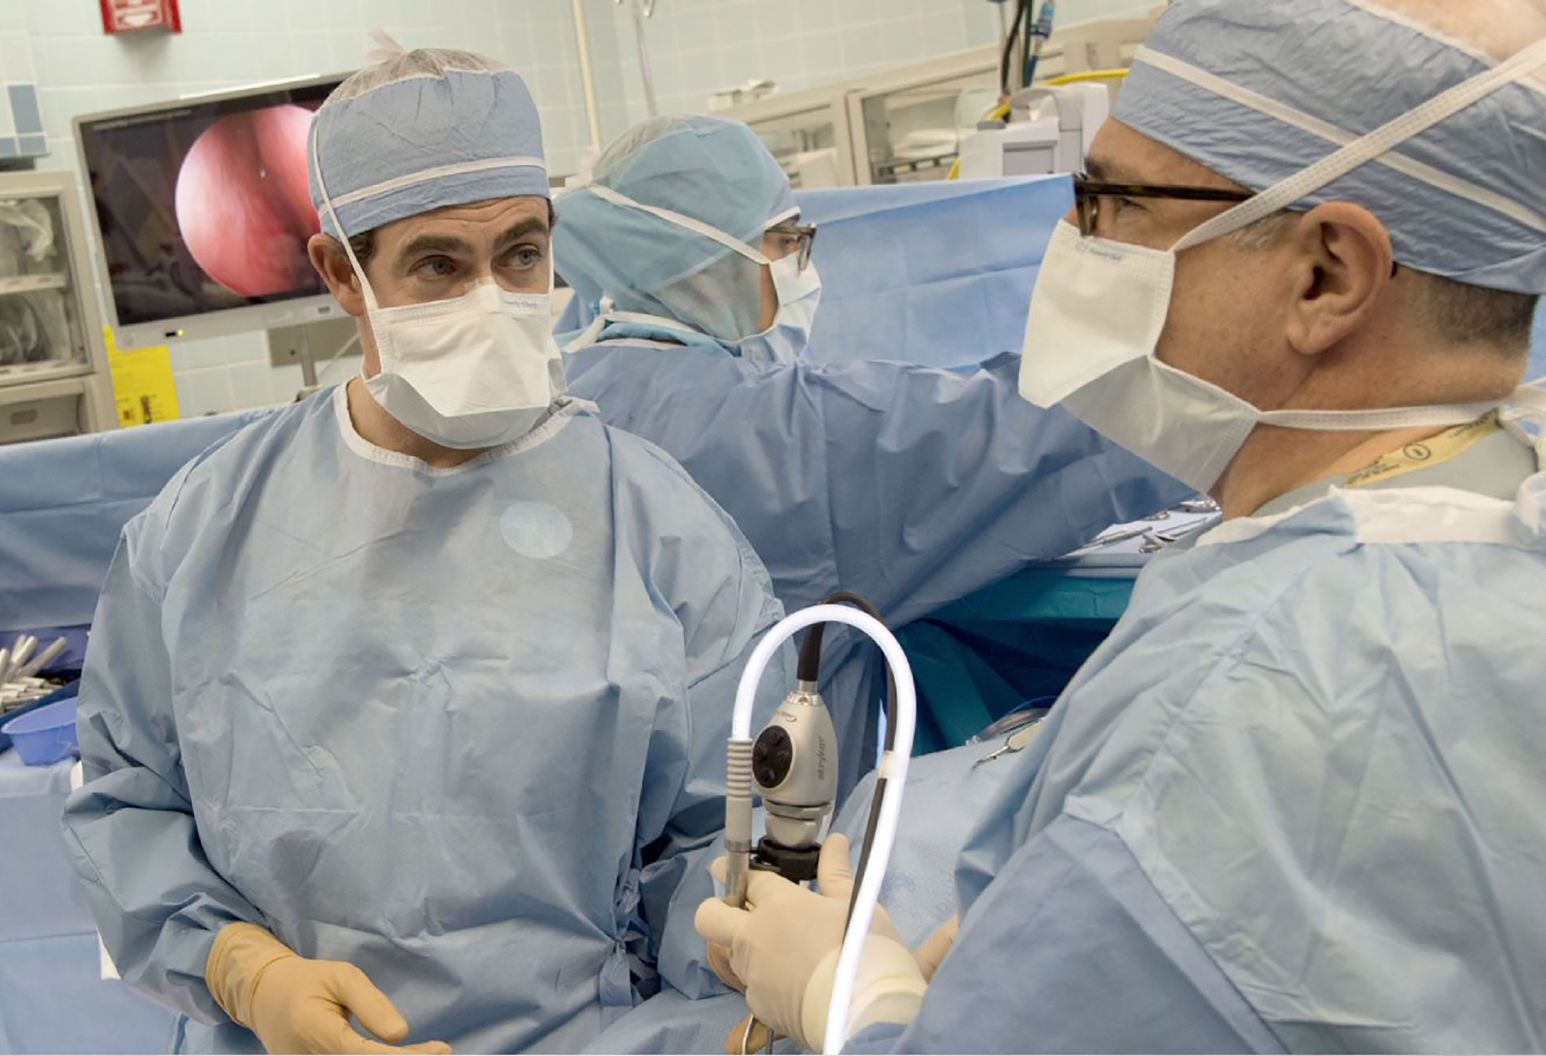 Surgeons in an operating room are performing a procedure